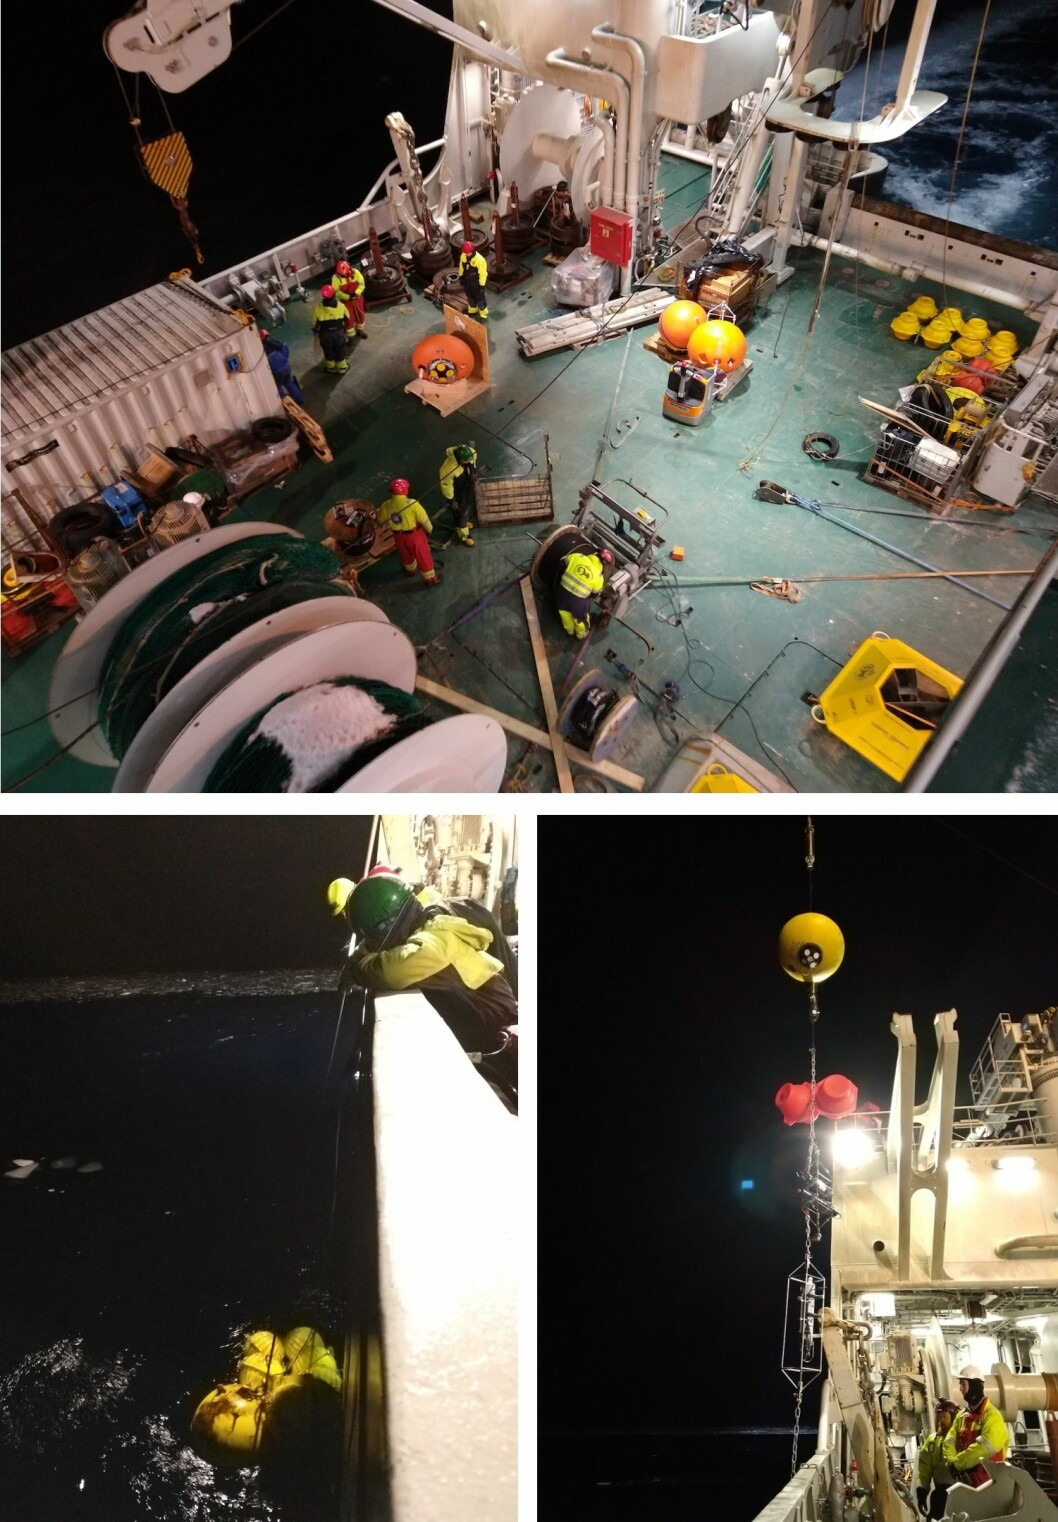 Retrieving and deploying oceanographic rigs is a demanding operation that would not be possible without the trained and knowledgeable crew of the ship.